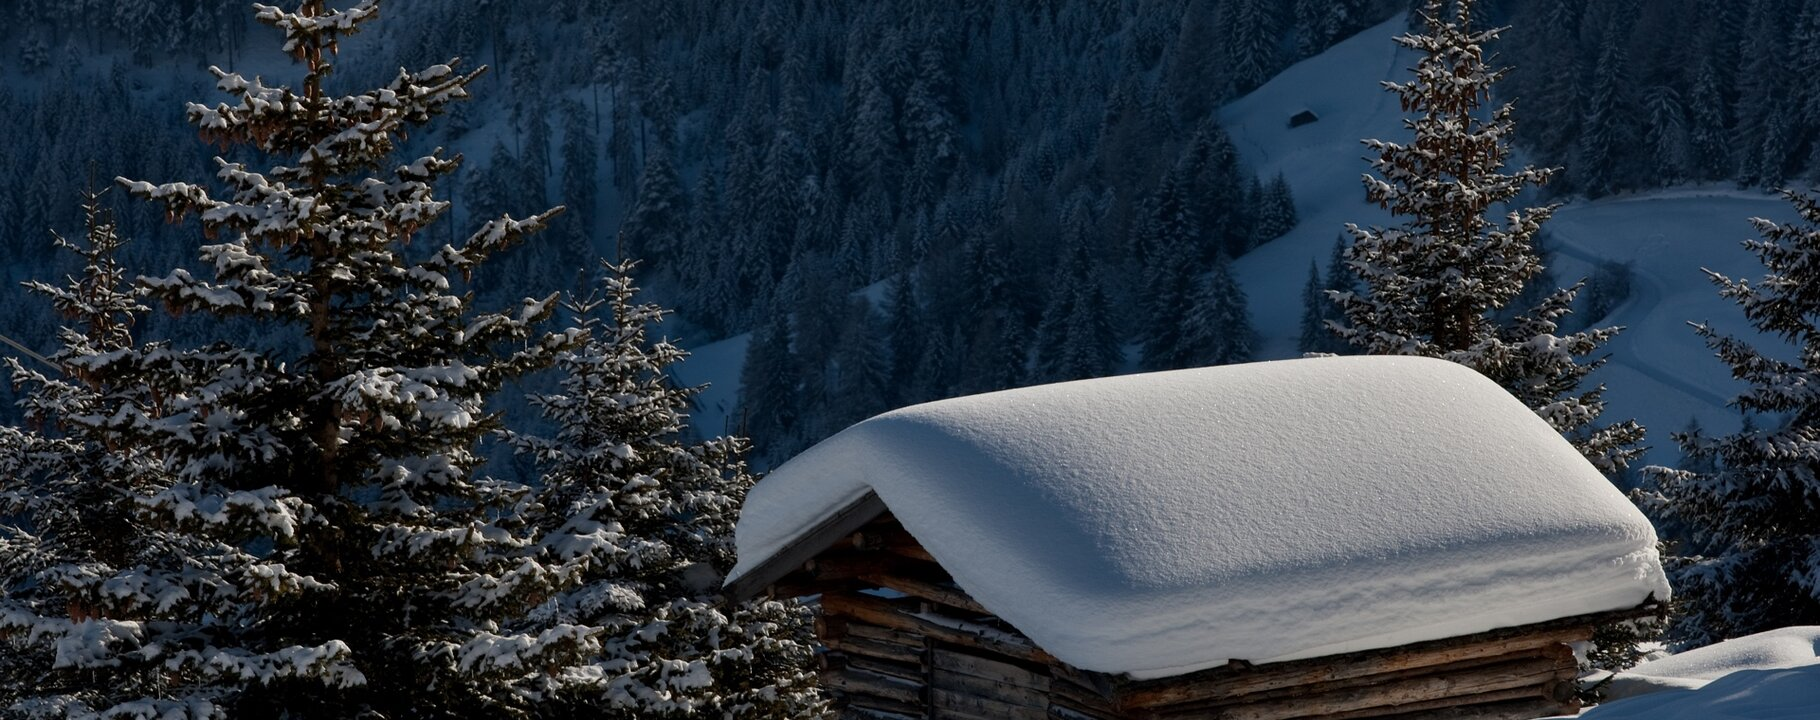 hay barn in the winter landscape | © Serfaus-Fiss-Ladis/Tirol